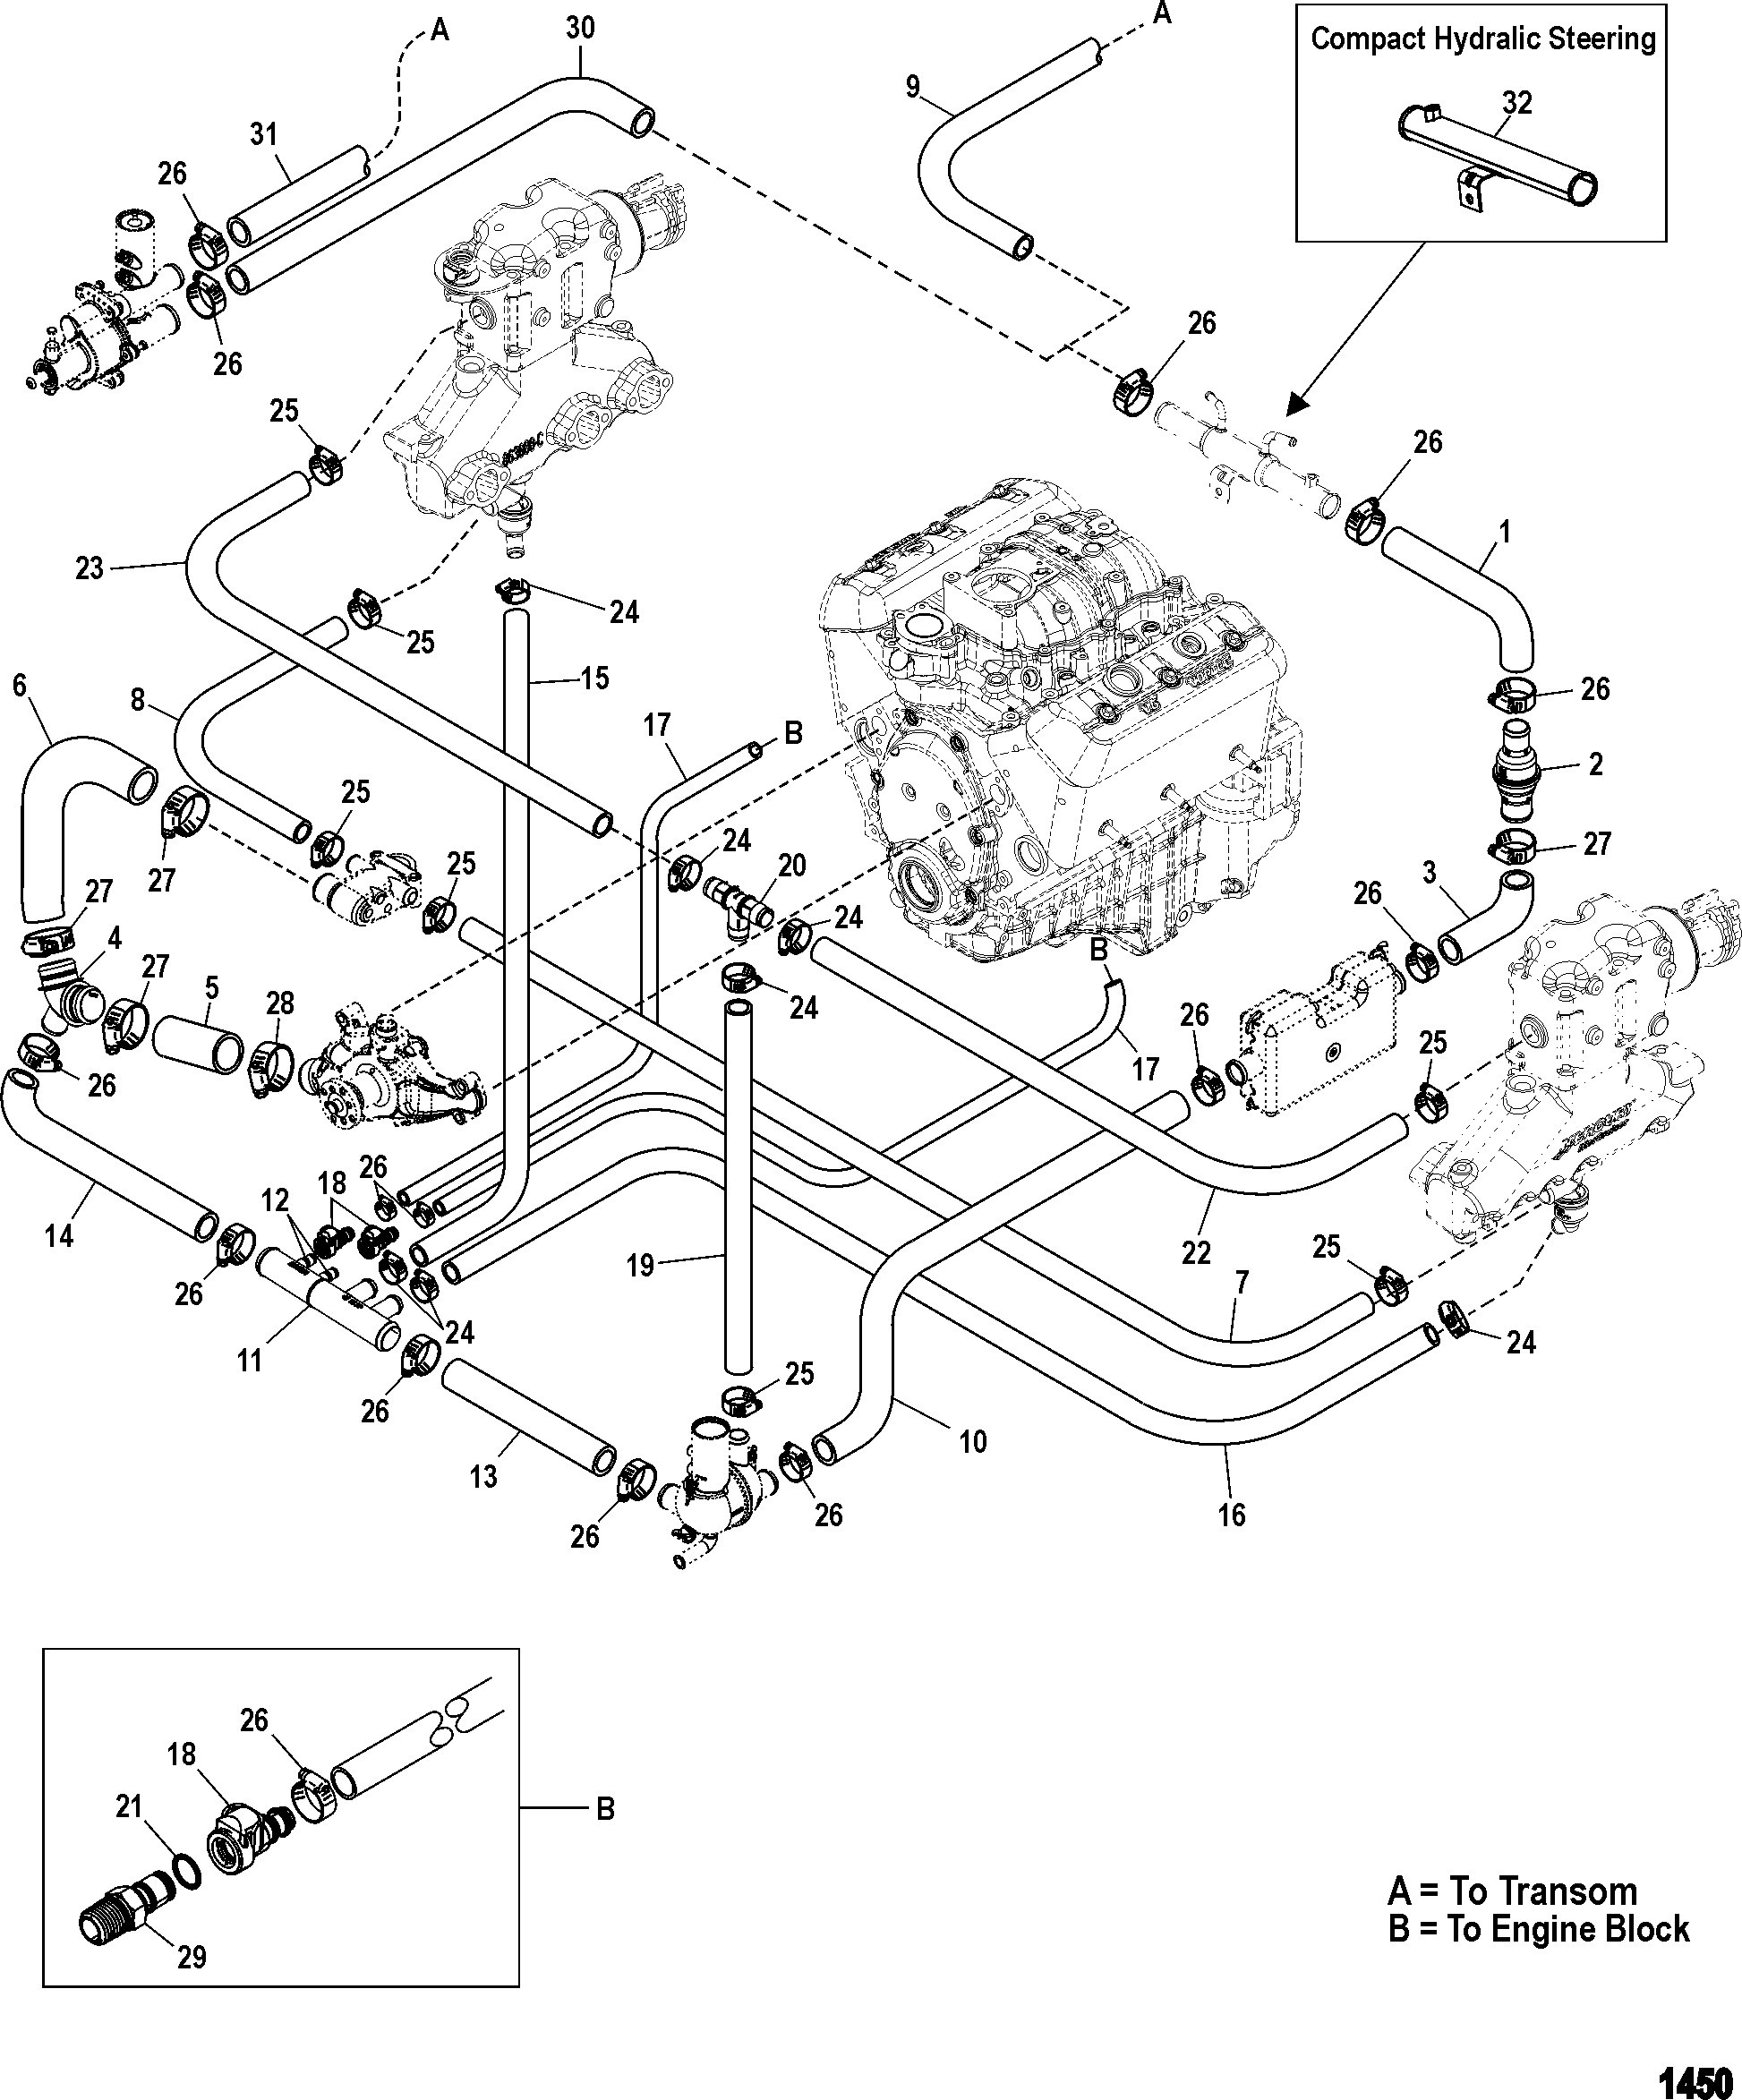 hight resolution of chevy 4 3 wiring harness diagram data schema 4 3 vortec wiring harness diagram 4 3 vortec wiring harness diagram